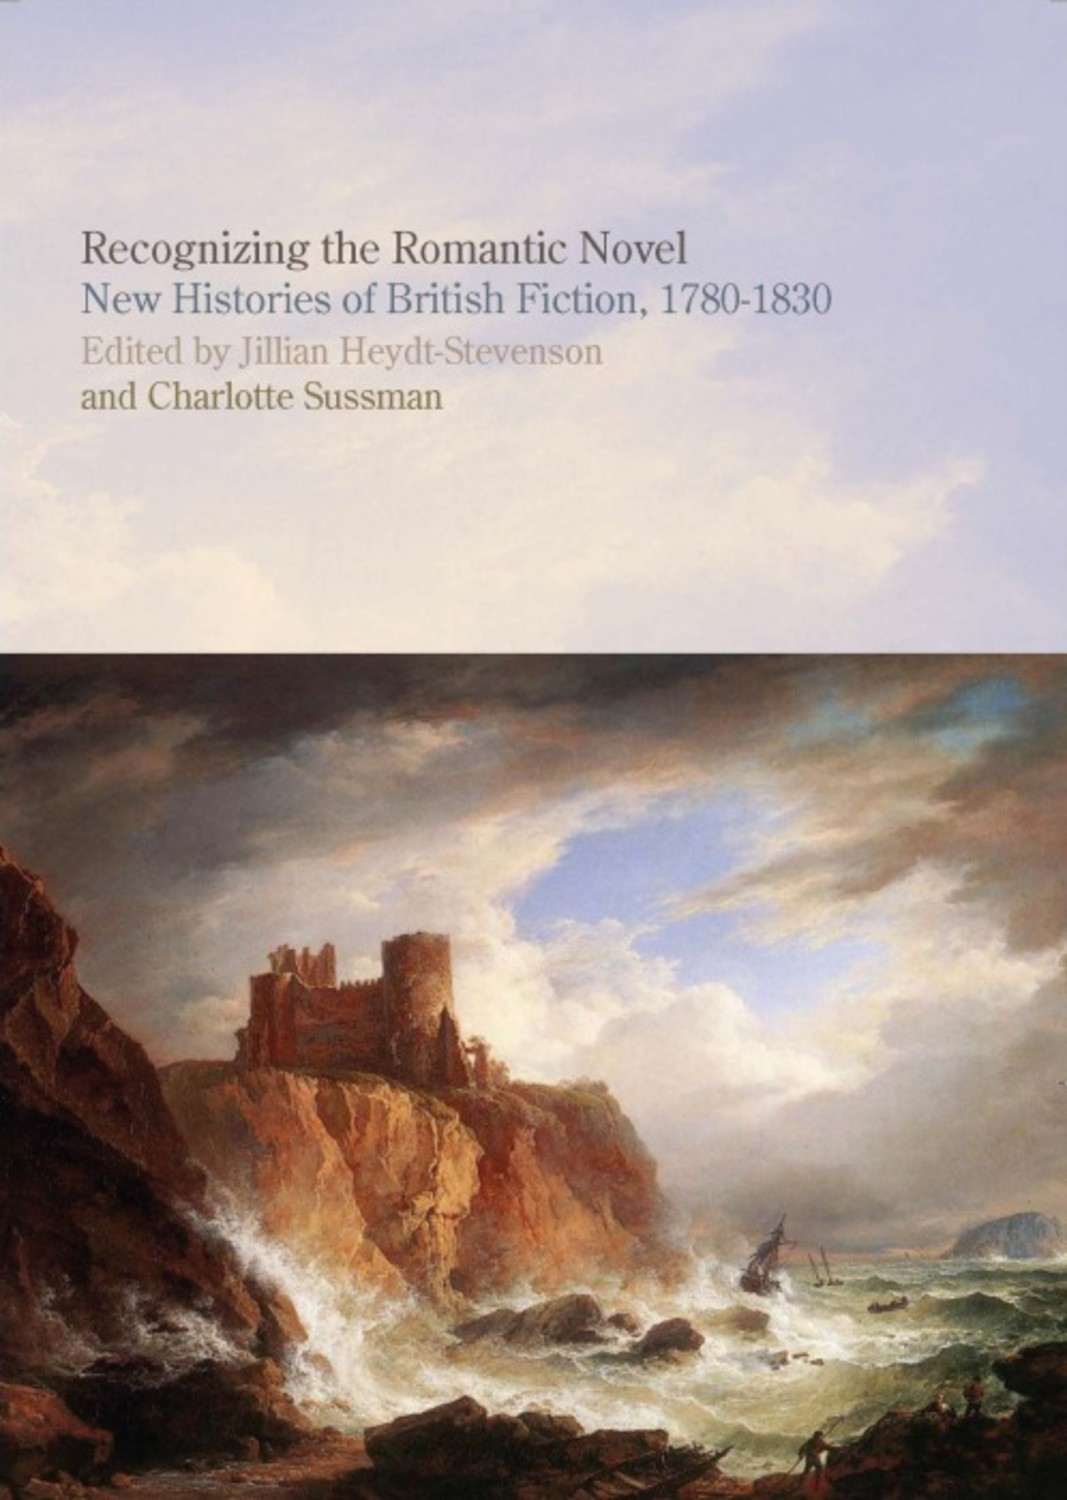 Recognizing the Romantic Novel